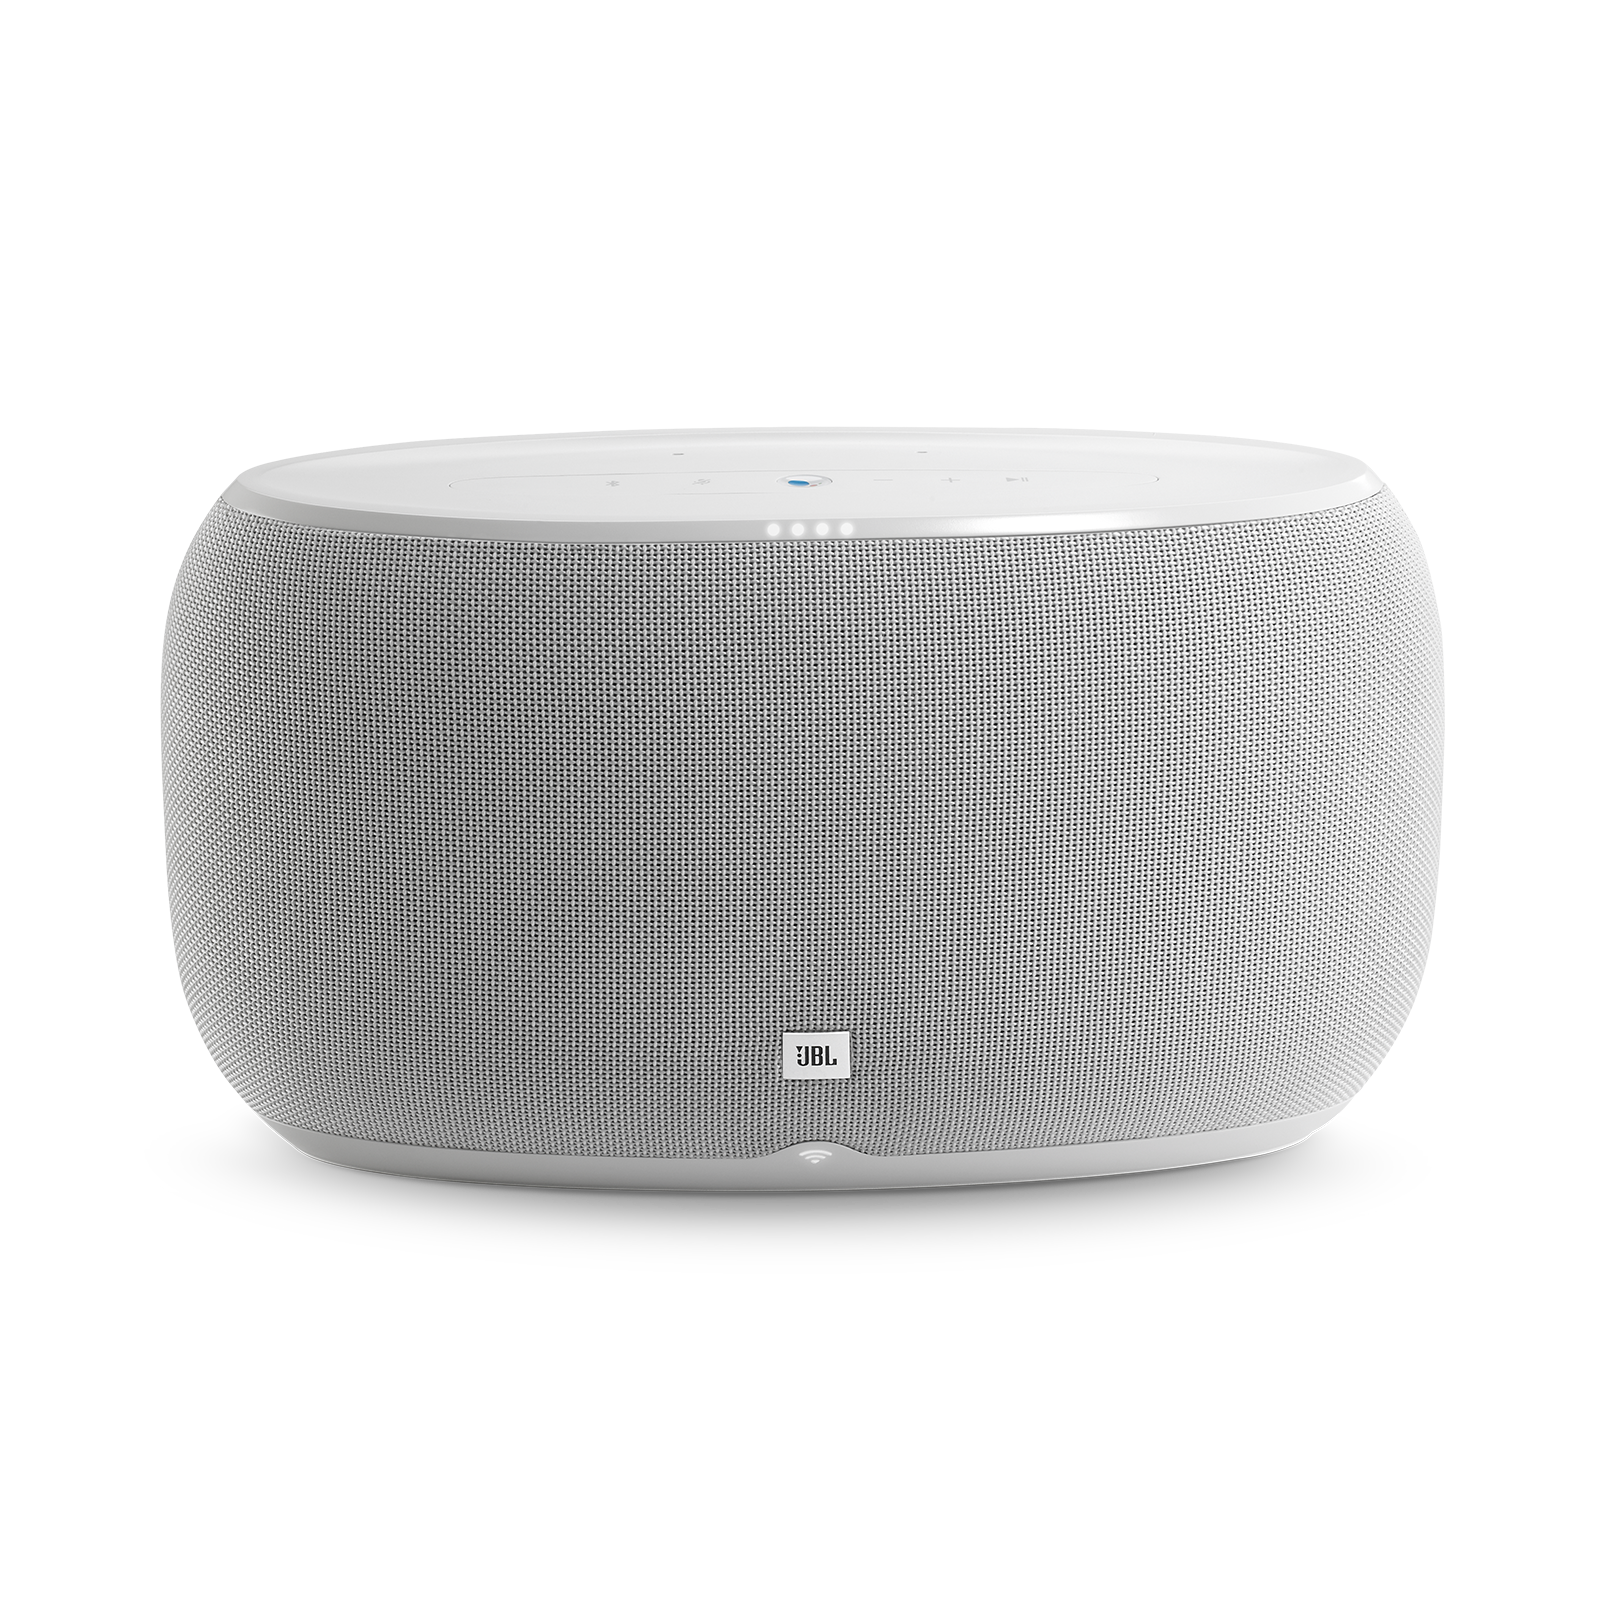 JBL Link 500 - White - Voice-activated speaker - Front